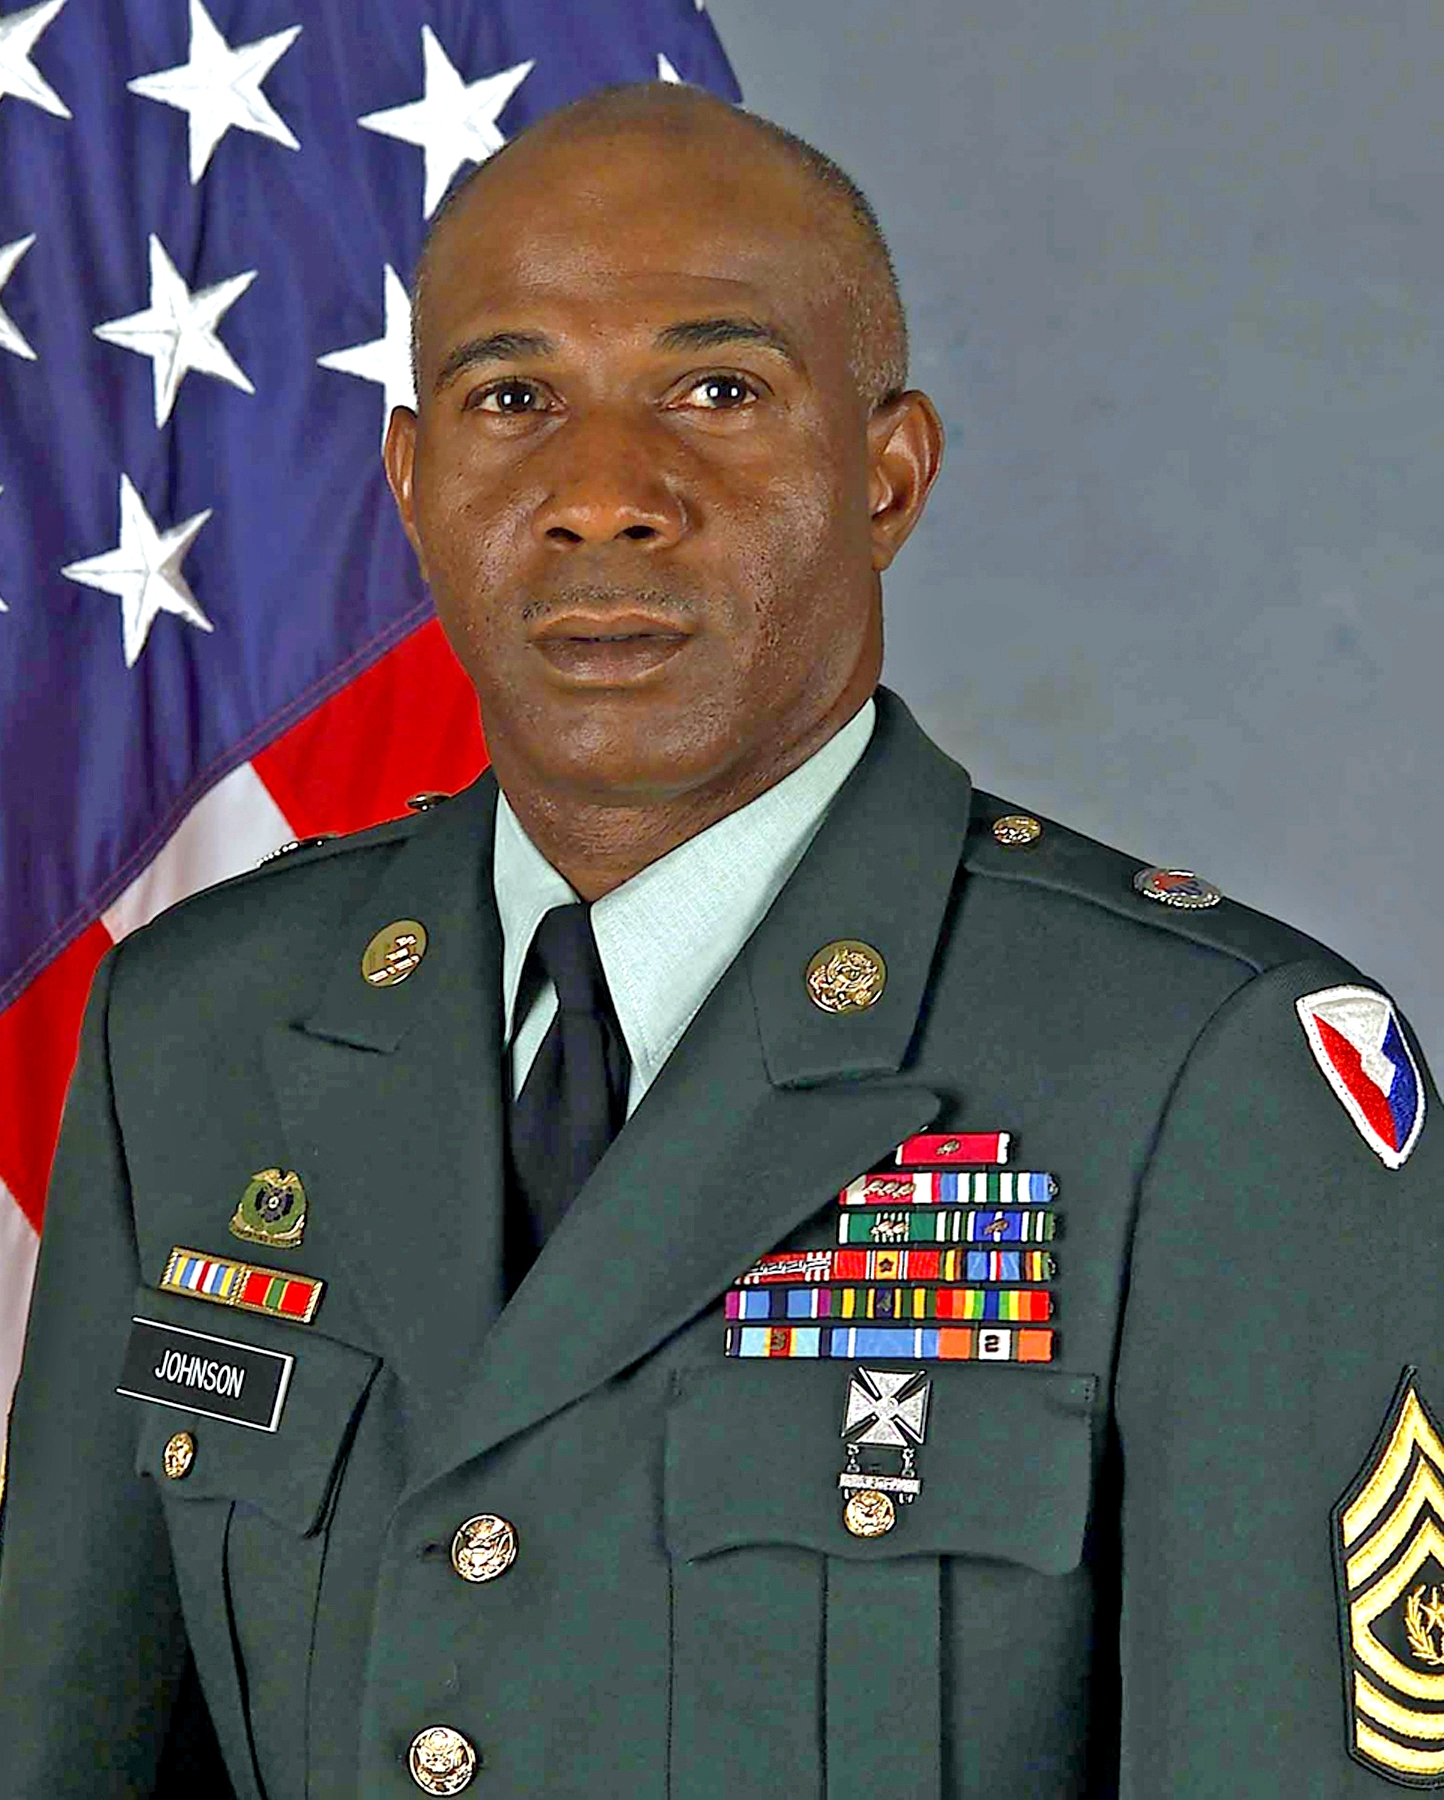 a job analysis of the command sergeants major position in the united states army Brigade level command sergeant major for the united states army garrison served as senior enlisted advisor to the installation commander, ensured efficiency in installation operations ensured quality of life and supported installation, which supports more than 44,000 service members, families and civilian workforce.